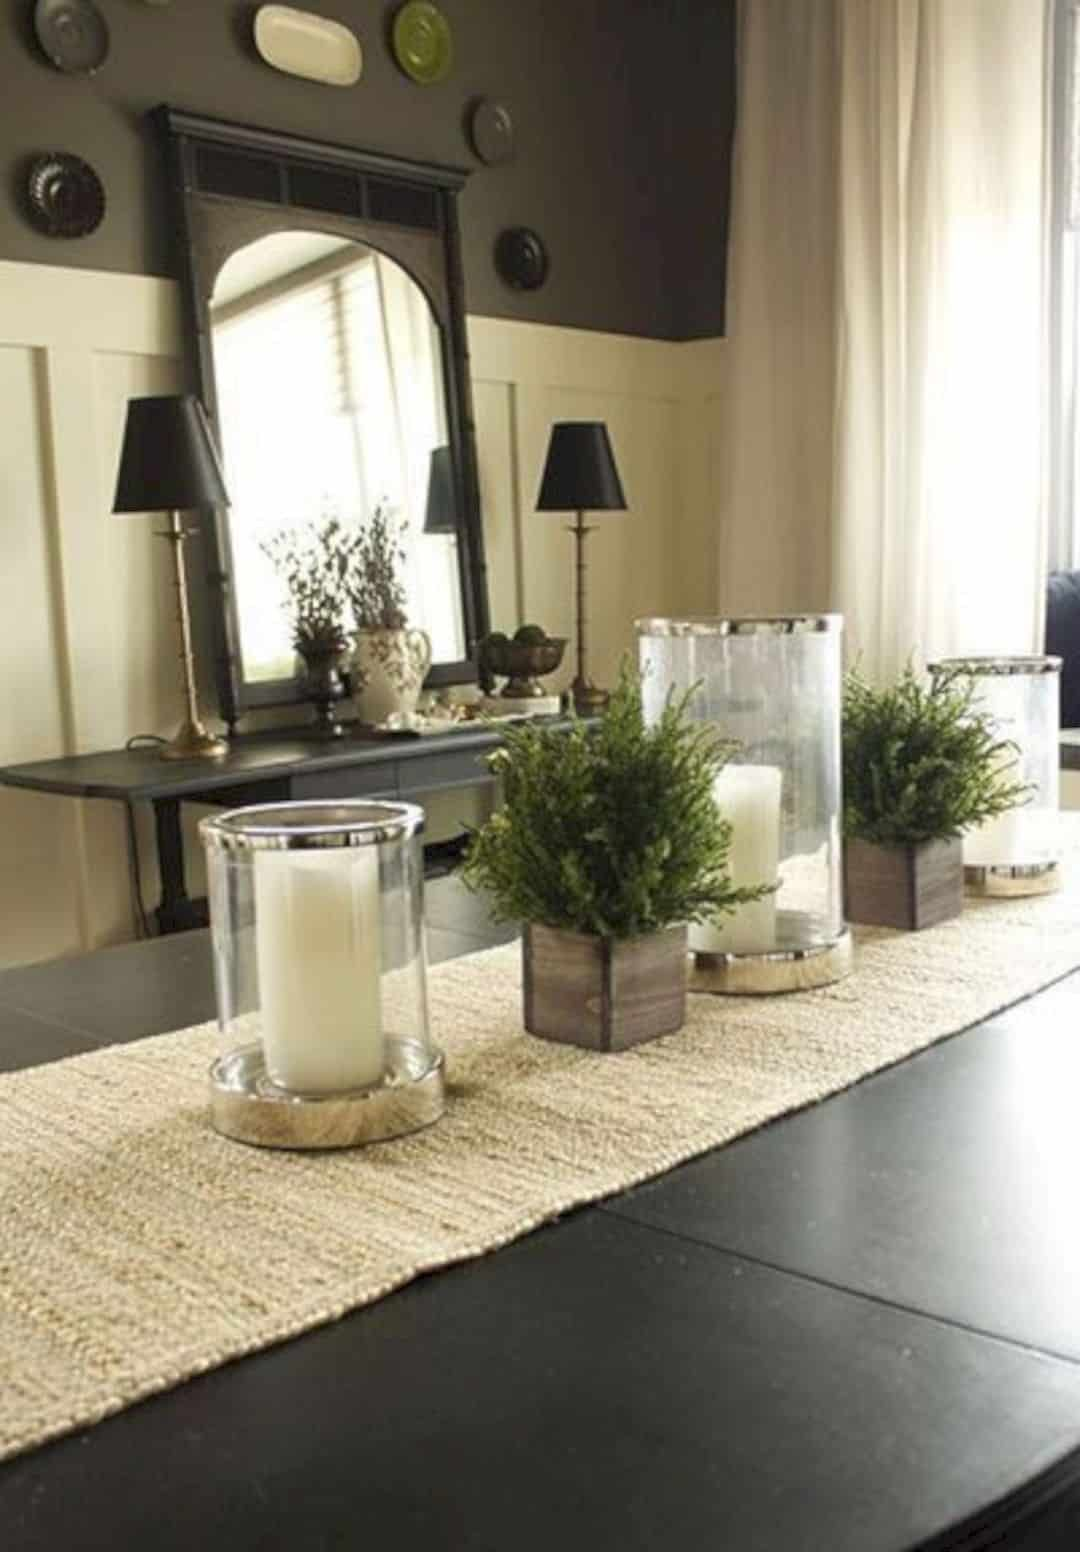 Candles For Dining Room Table / Hurricane candleholder Bronze Luxury dining table ... / Get inspired with these décor tips and ideas from the world's best restaurant designs.